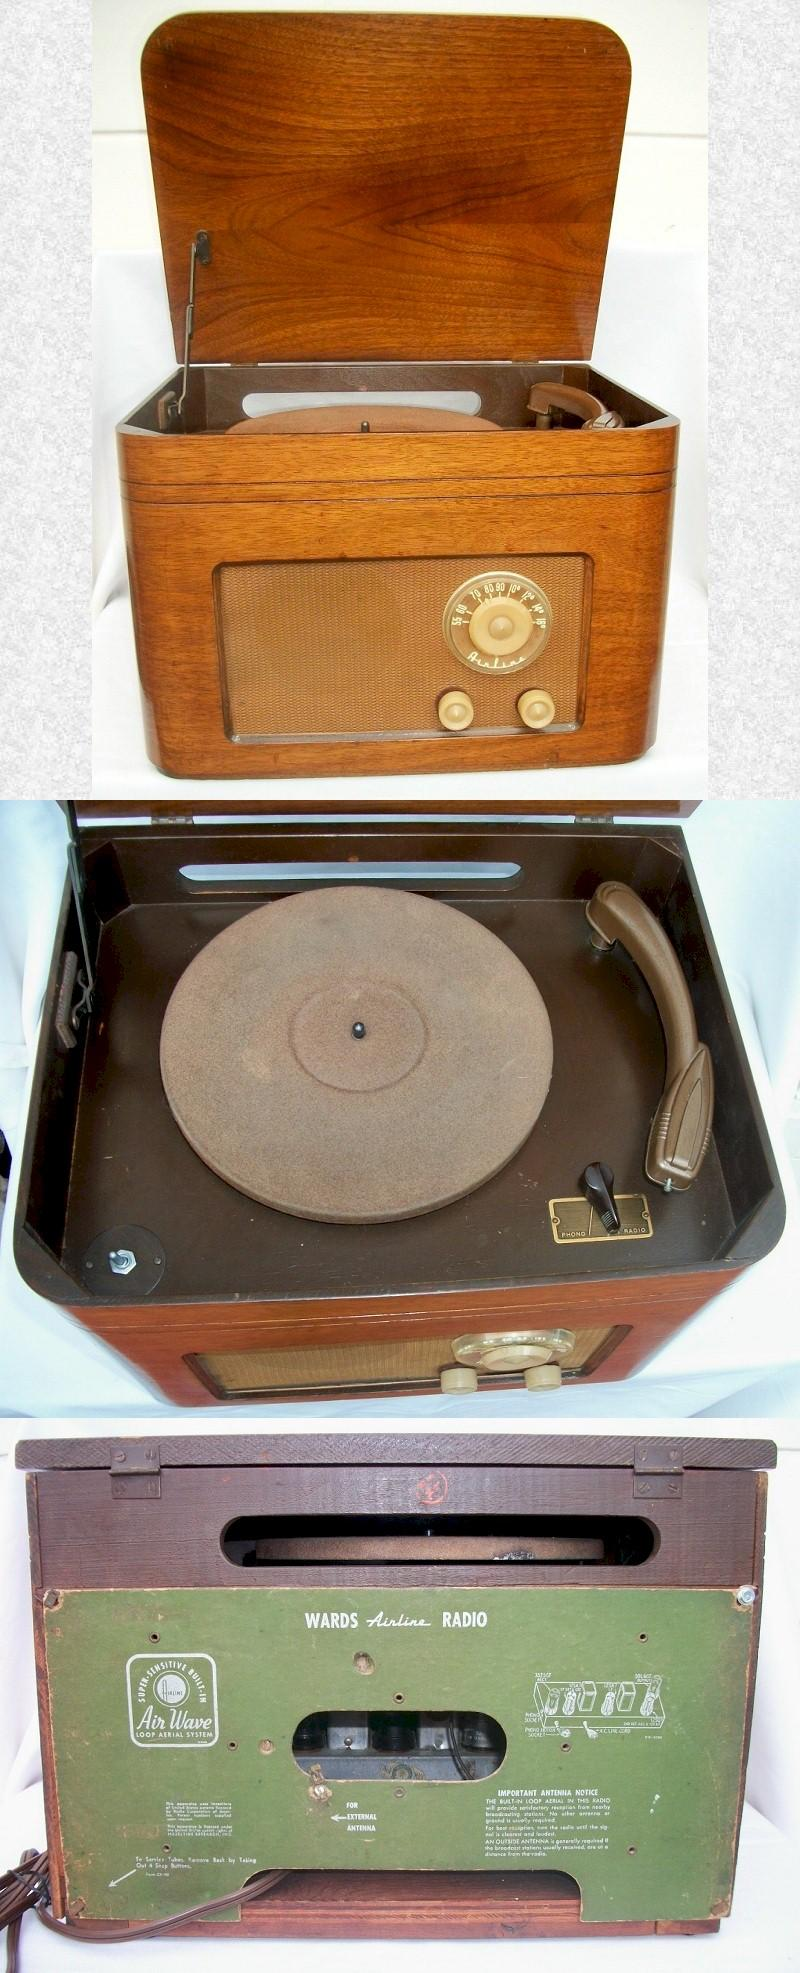 Airline GKM703 Radio Record Player (1950-51)